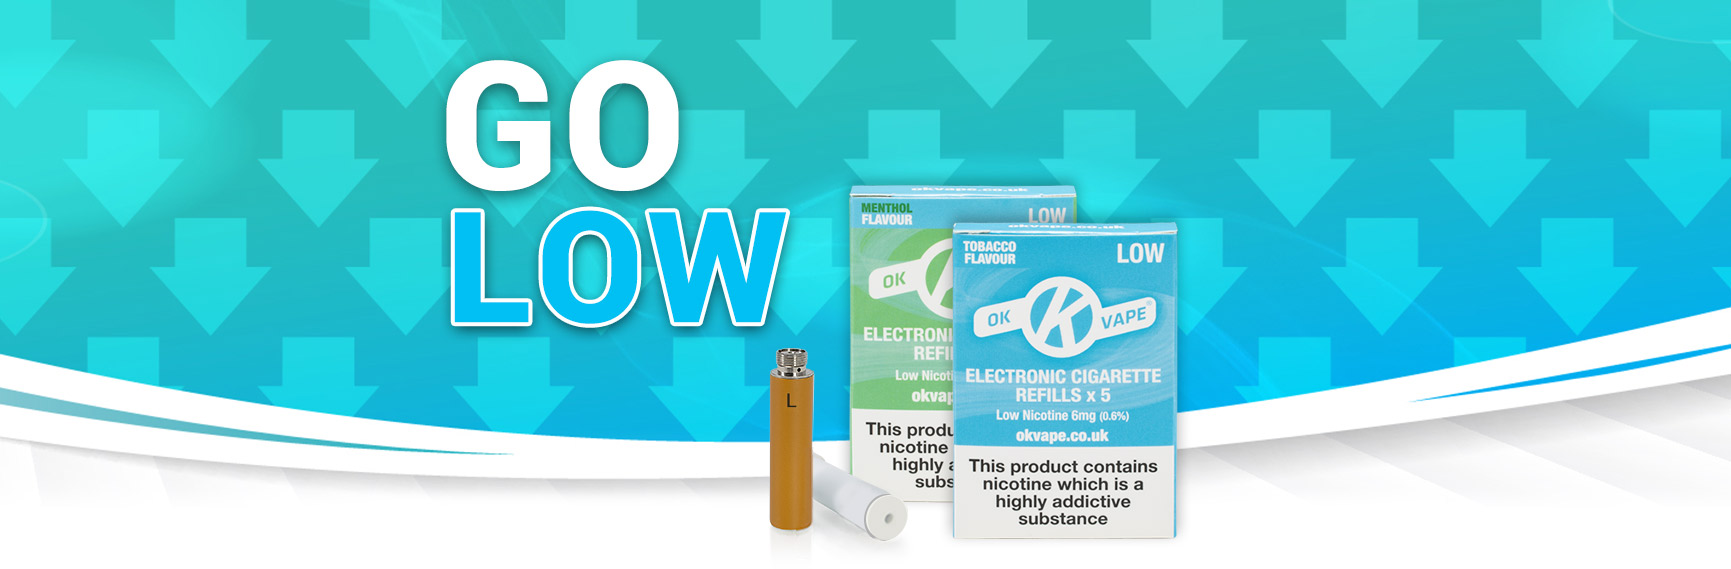 Low strength cigalike refills now available (6mg) blog header